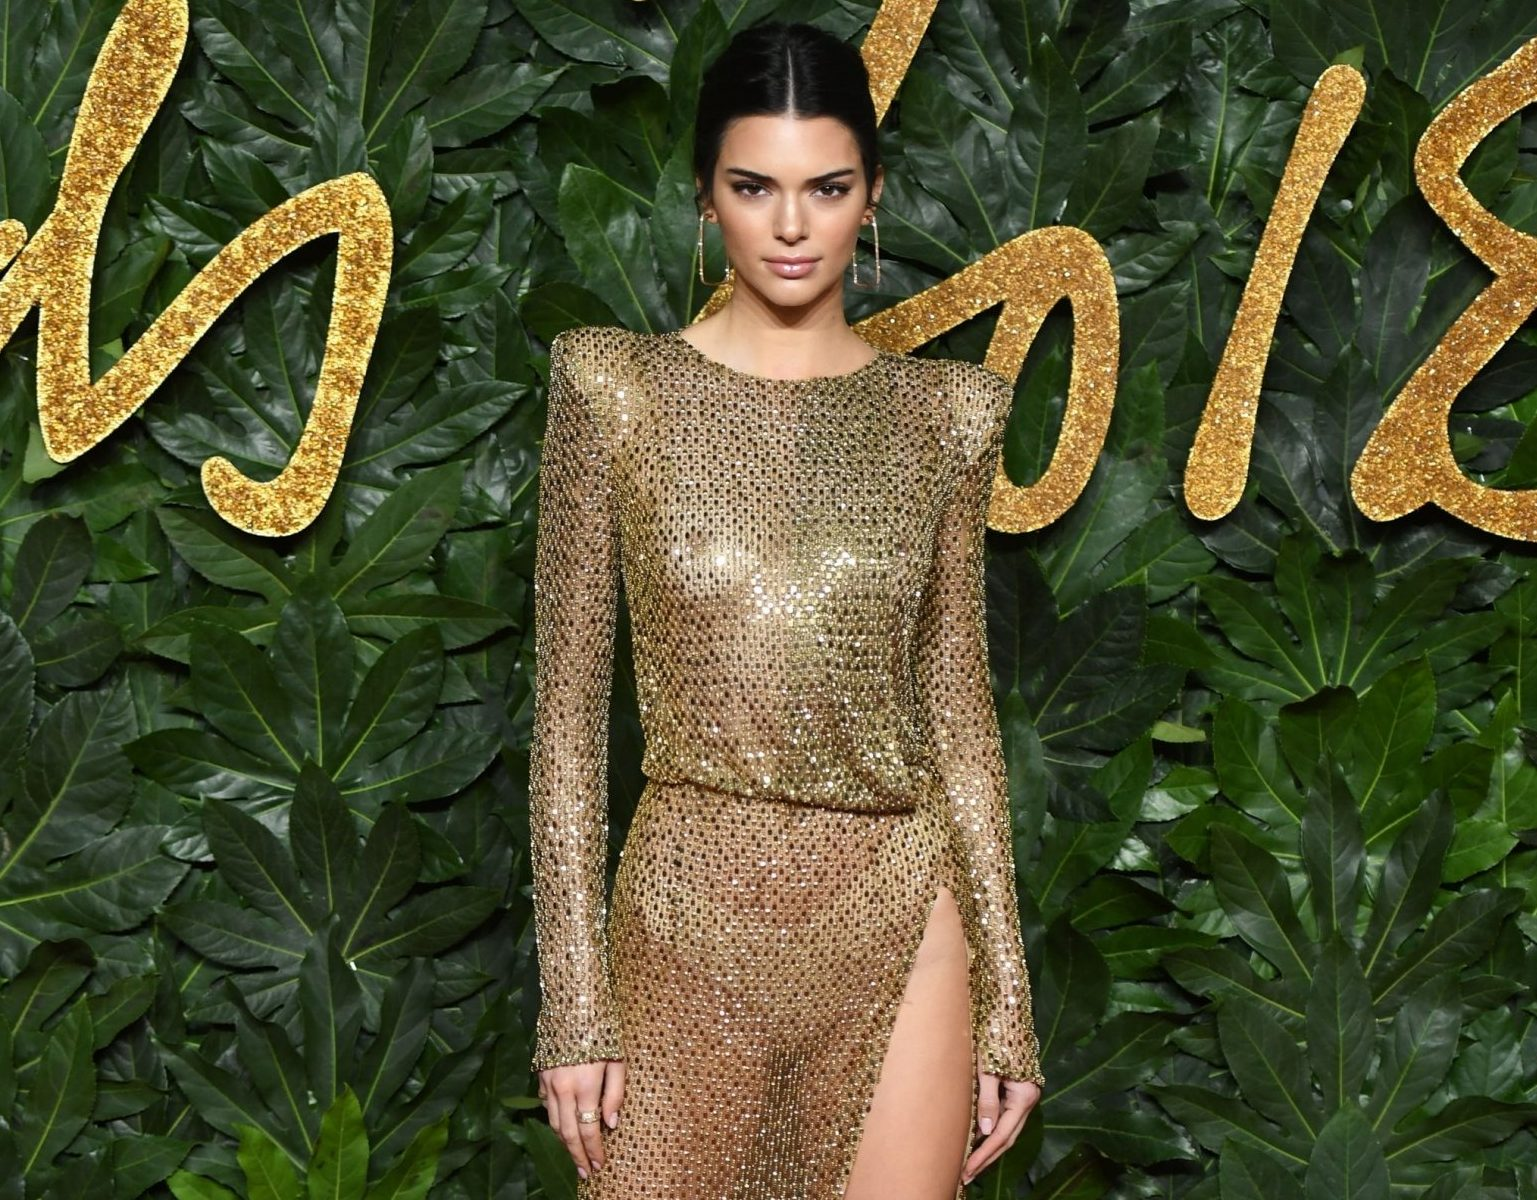 BGUK_1430427 - London, UNITED KINGDOM - The British Fashion Awards 2018 held at the Royal Albert Hall in London. Pictured: Kendall Jenner BACKGRID UK 10 DECEMBER 2018 BYLINE MUST READ: TIMMSY / BACKGRID UK: +44 208 344 2007 / uksales@backgrid.com USA: +1 310 798 9111 / usasales@backgrid.com *UK Clients - Pictures Containing Children Please Pixelate Face Prior To Publication*